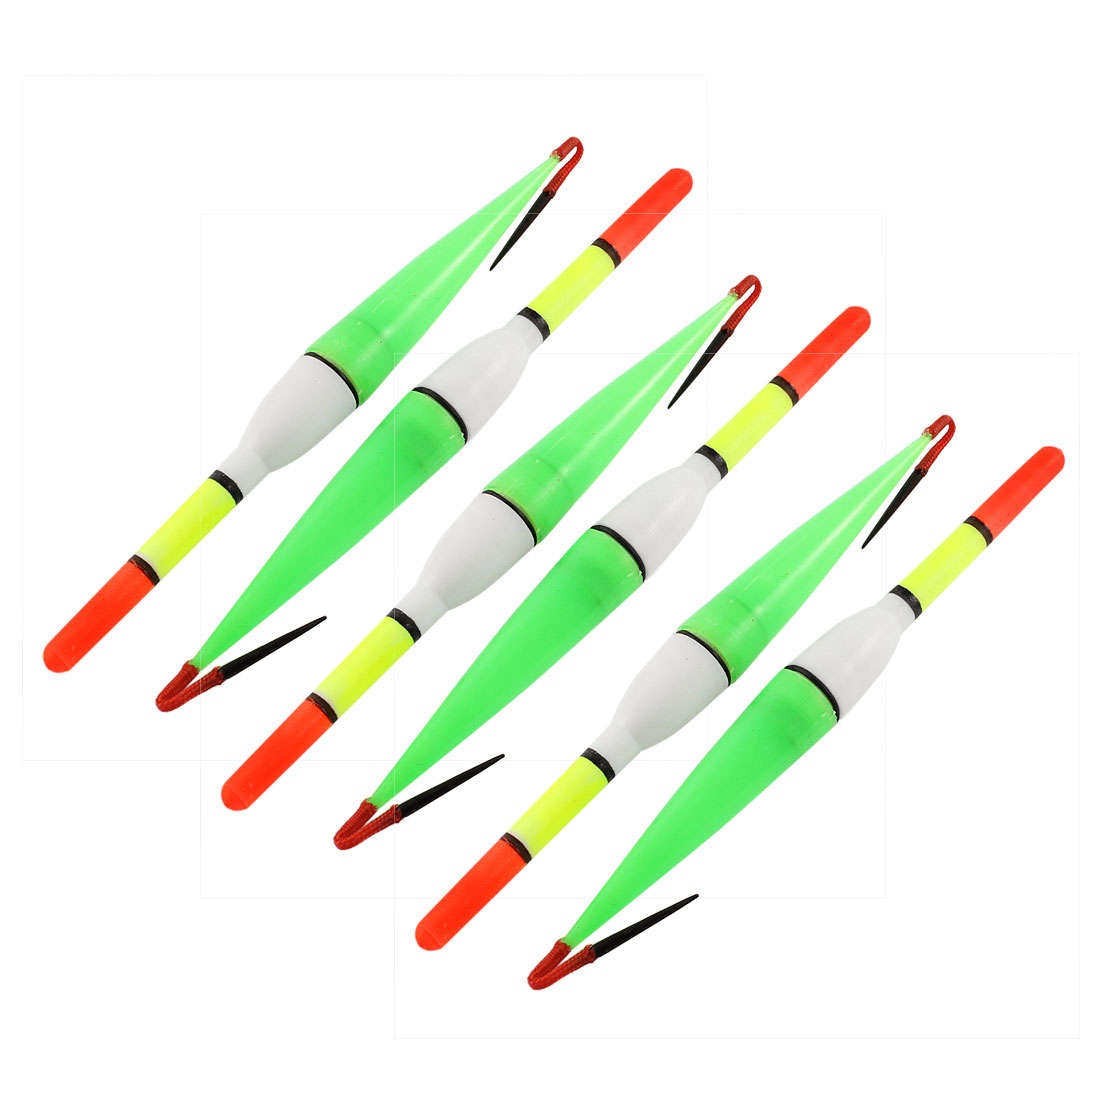 "6 Pcs Multicolor Floating Fish Bobbers Indicator Floater 7"" Length"